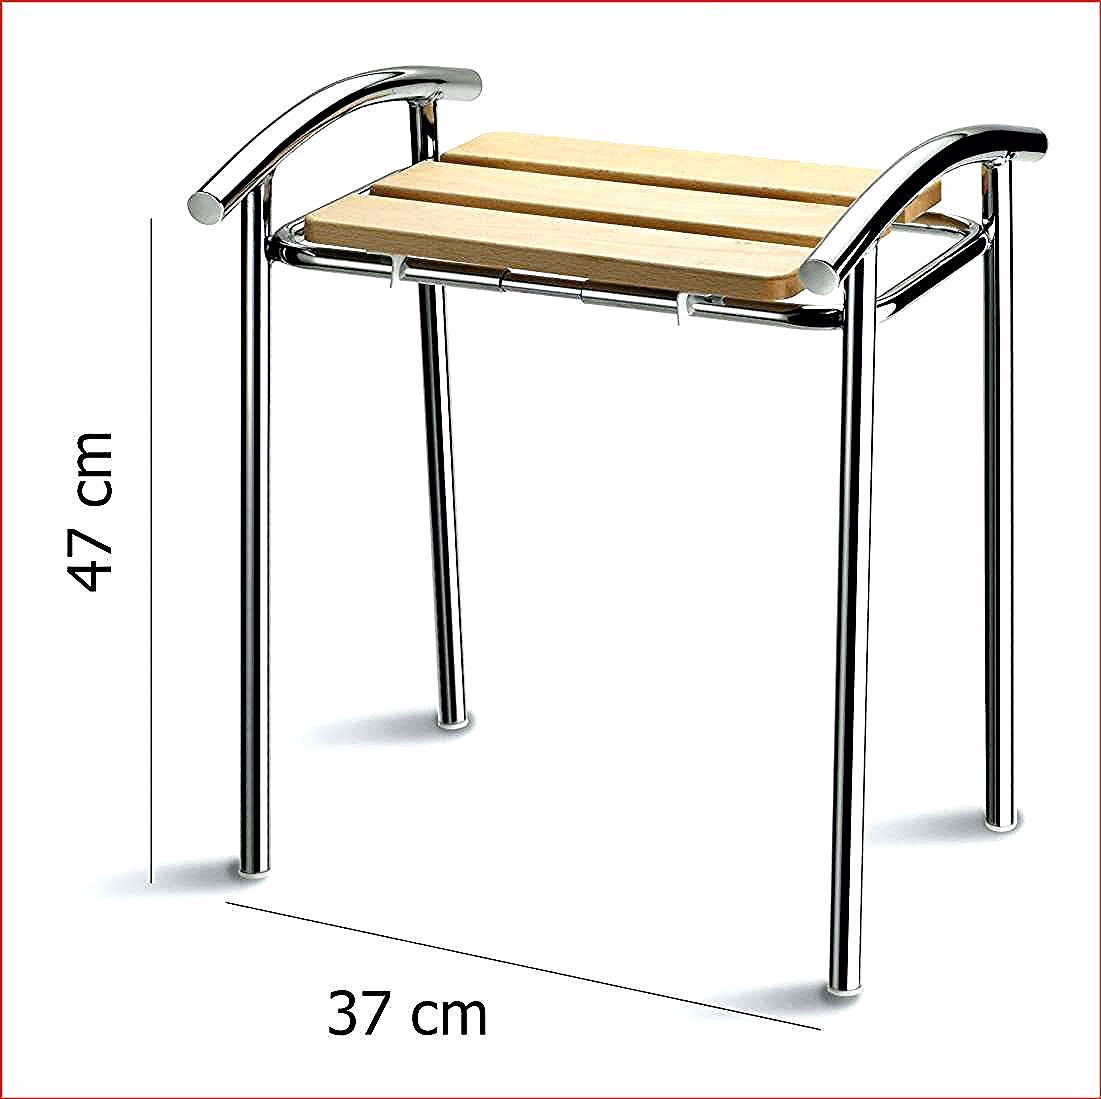 Tabouret De Salle De Bain In 2020 Home Decor Furniture House Design